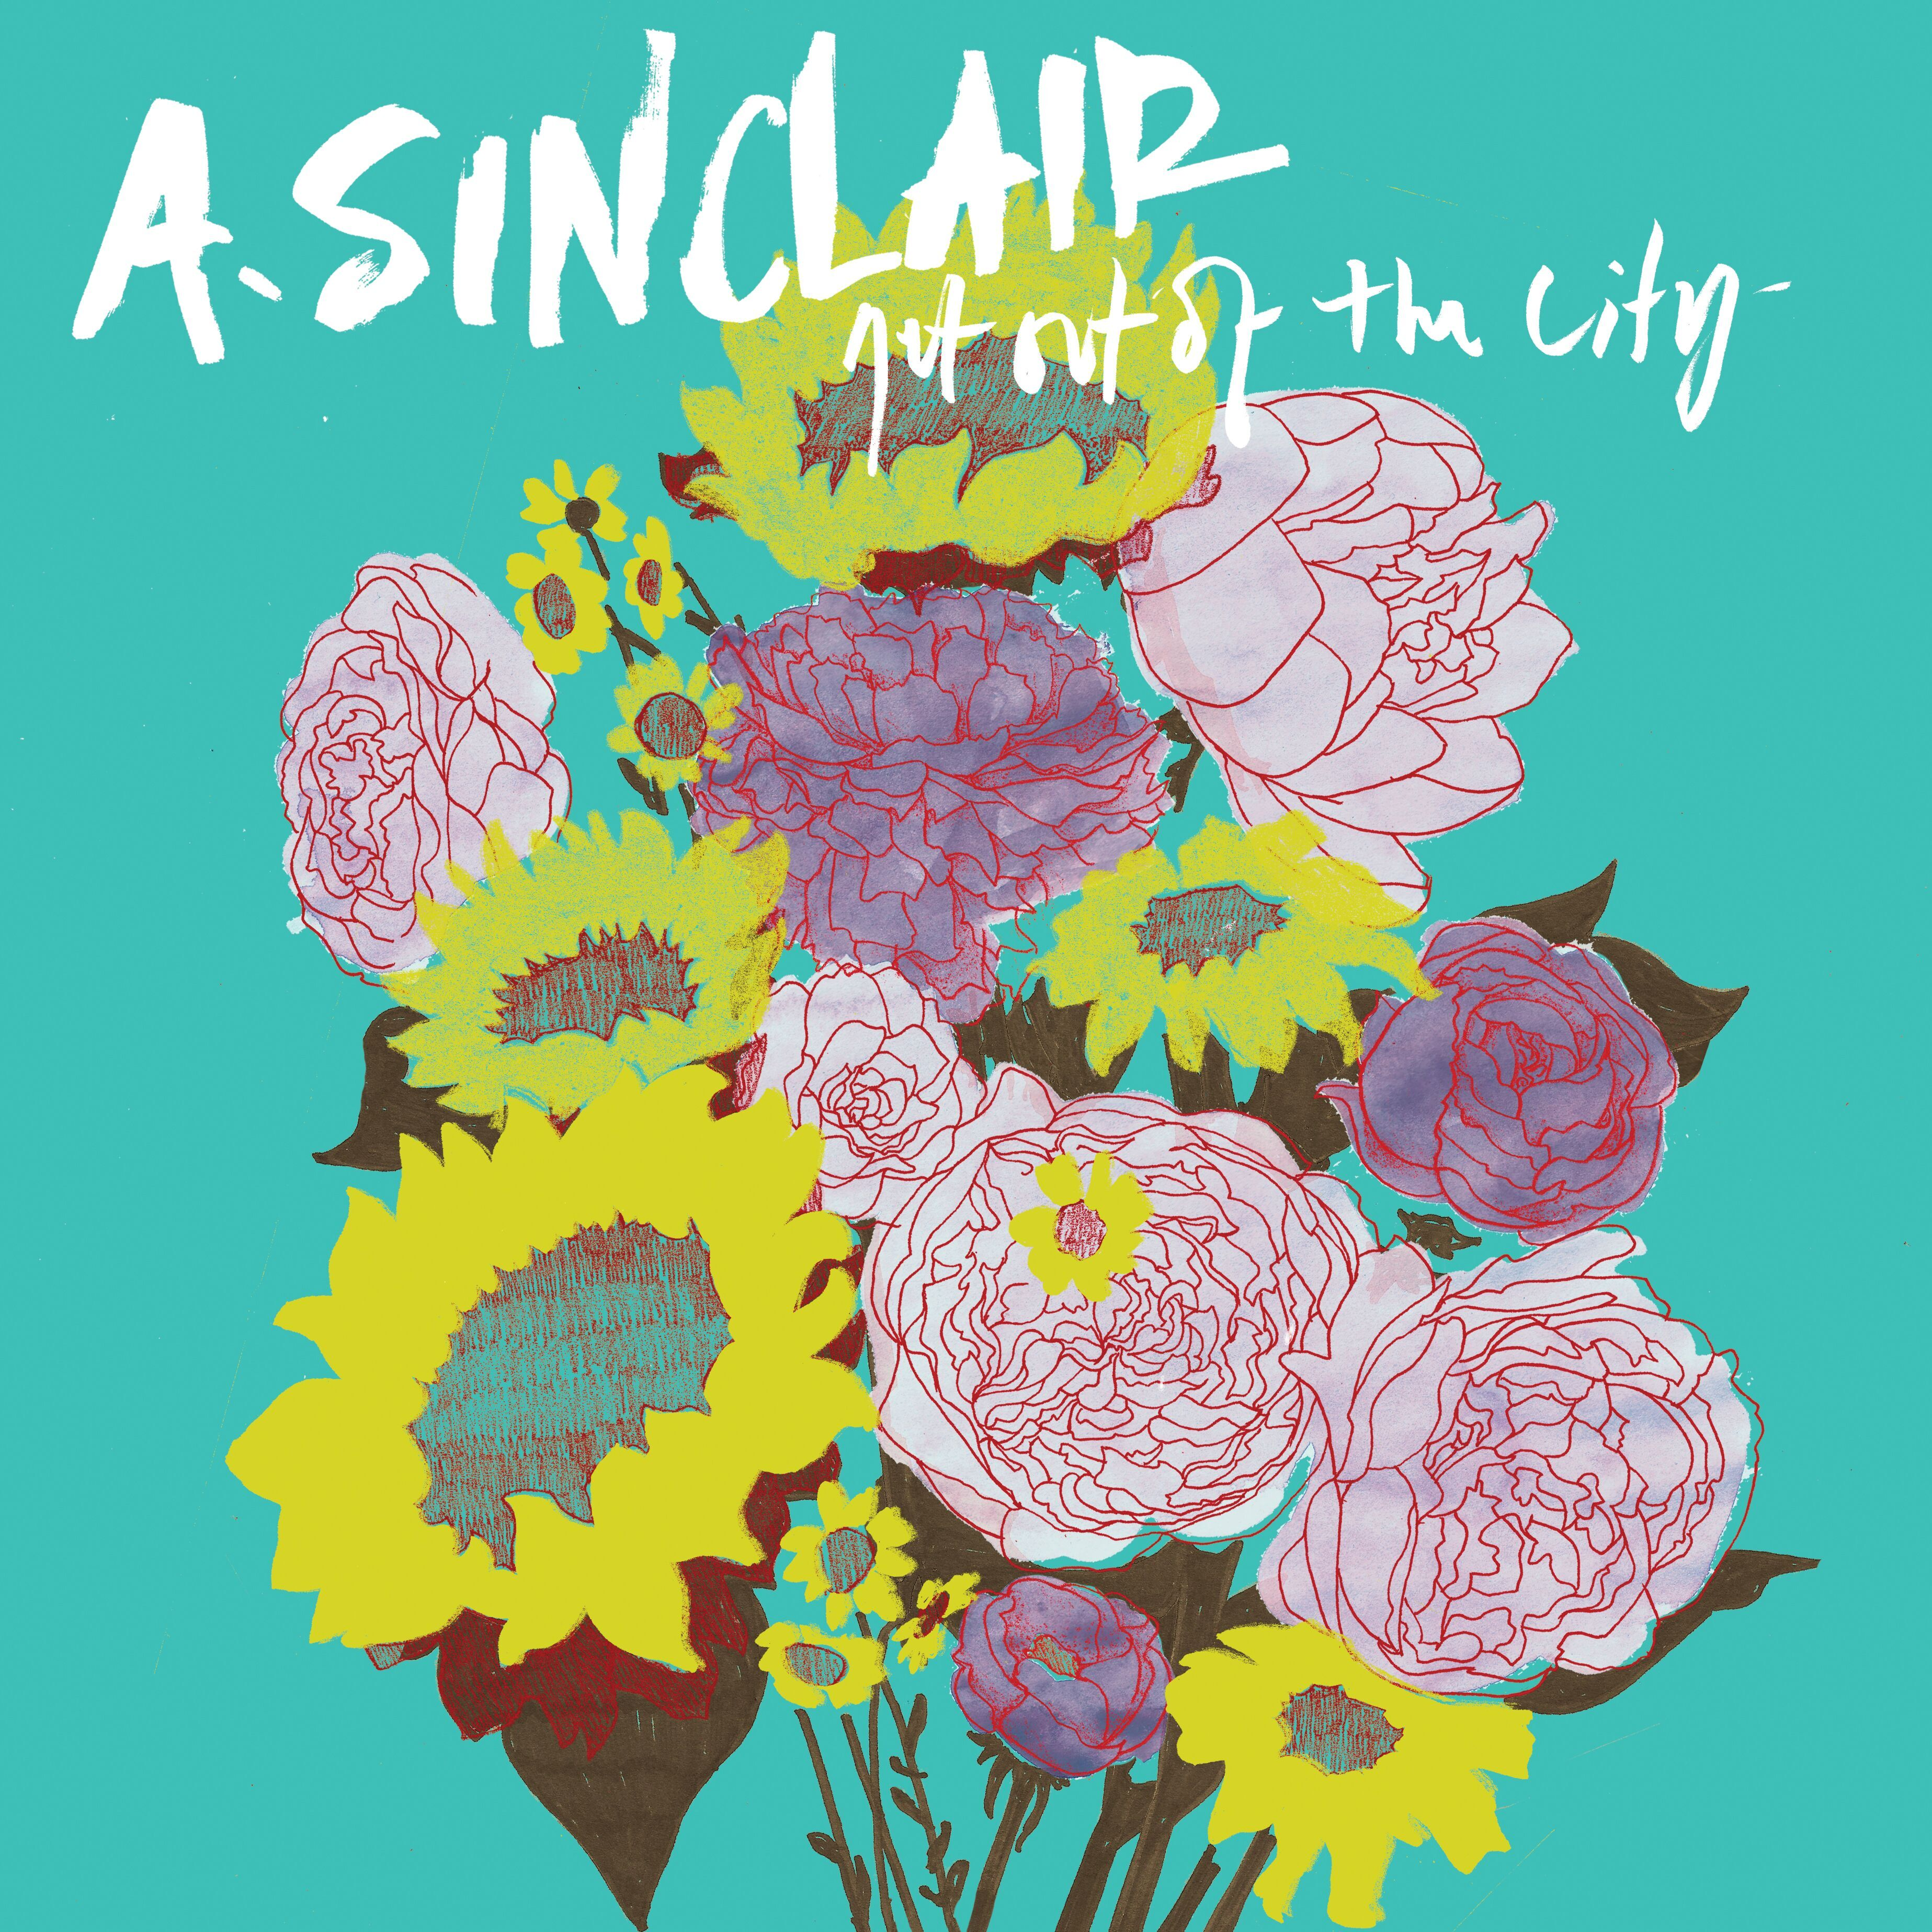 A. Sinclair - Get Out Of The City - Digital